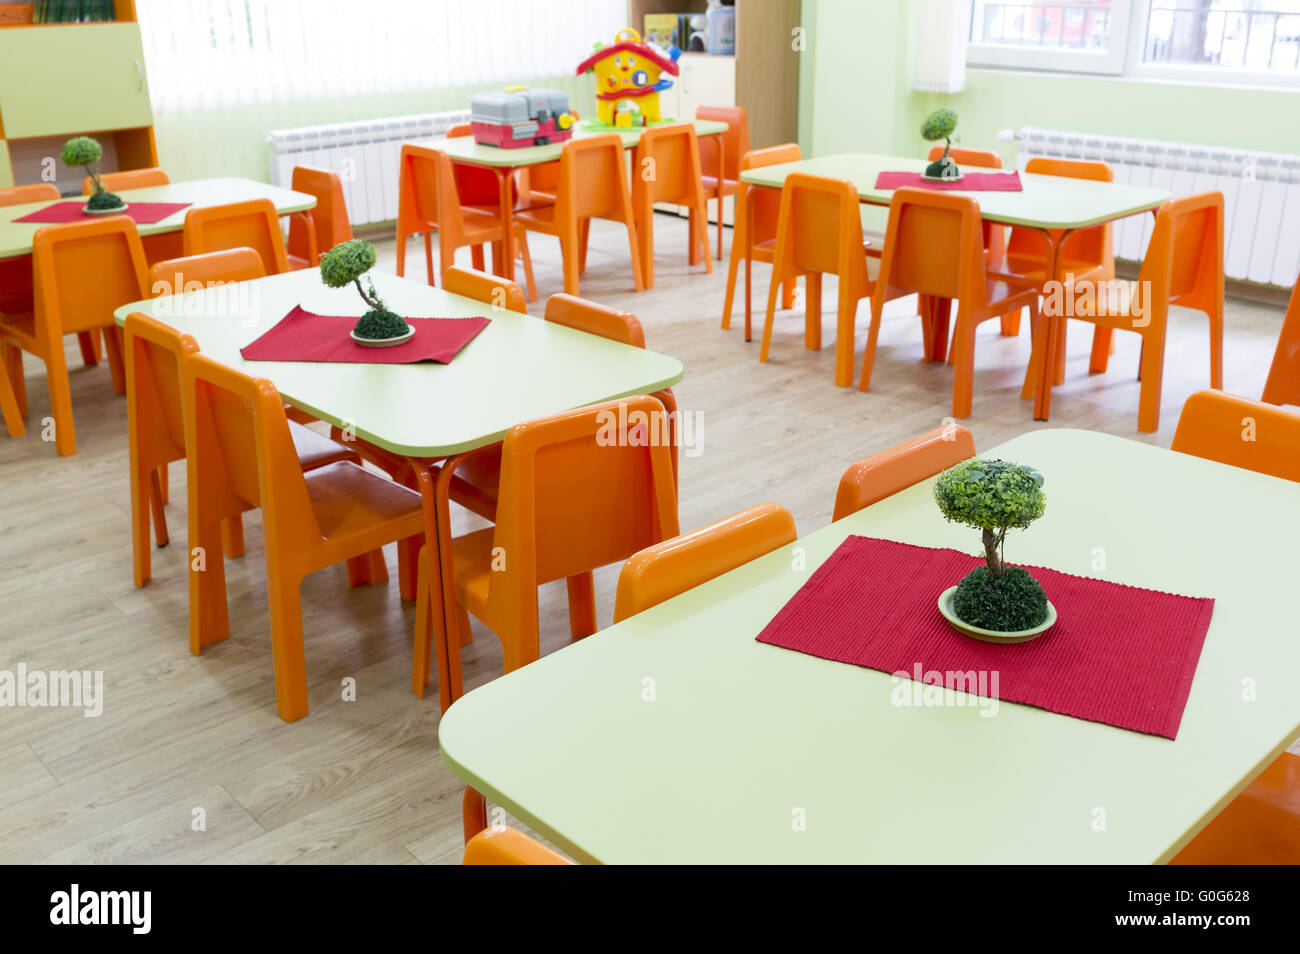 Kindergarten classroom table - Kindergarten Classroom With Small Chairs And Tables